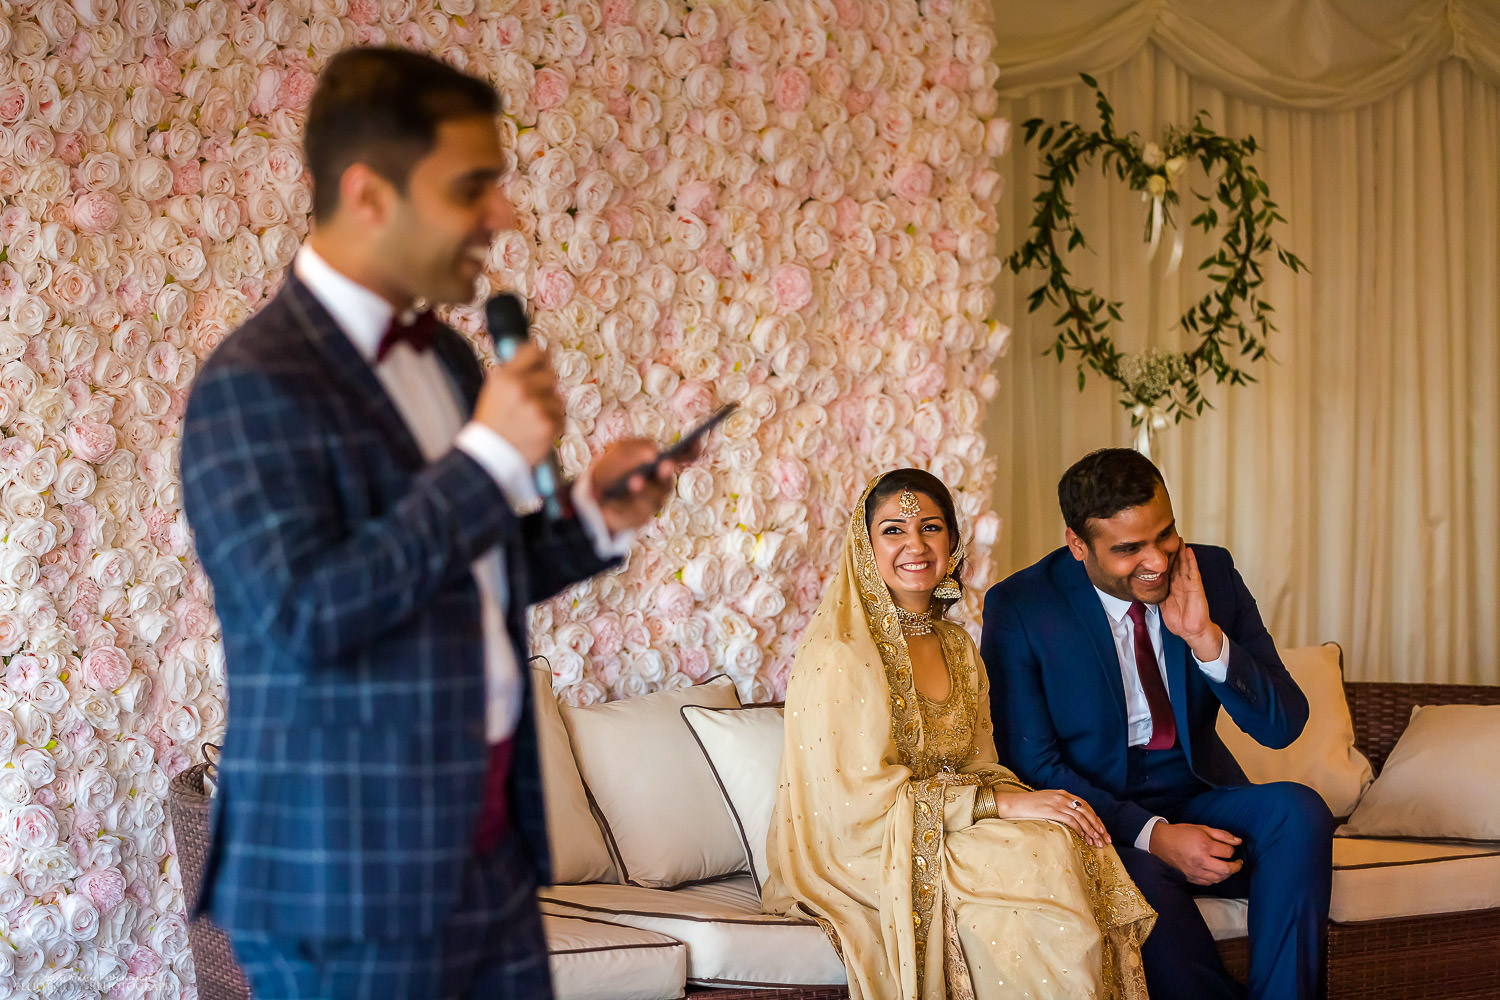 Speeches at asian engagement party at Vallum Farm. Photo by Elliot Nichol Photography.